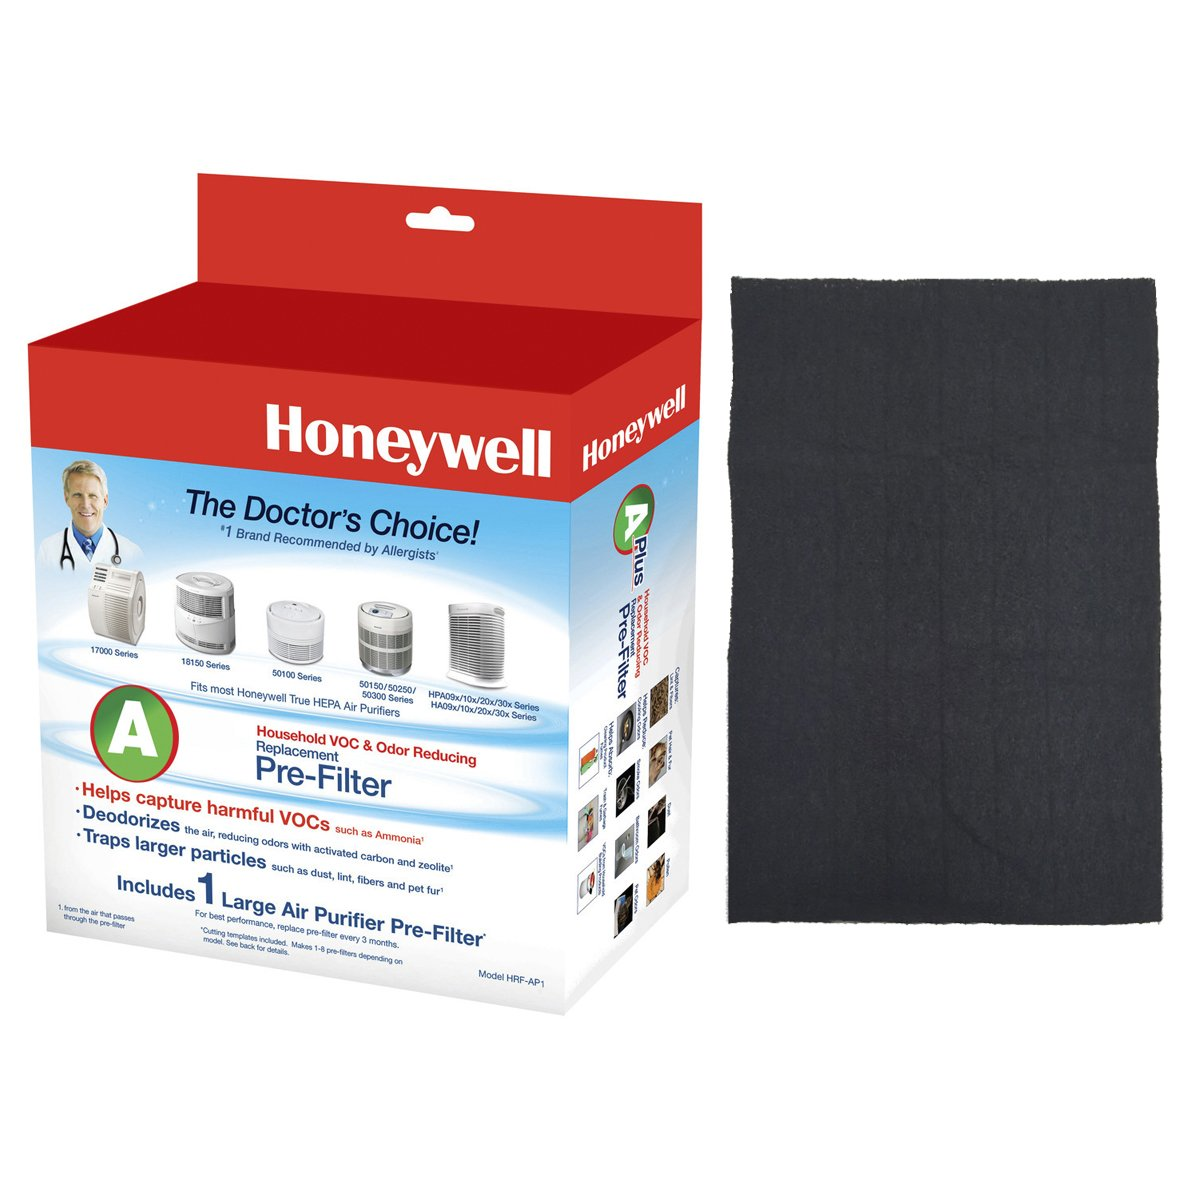 Honeywell Filter A HRF-AP1 Universal Carbon Air Purifier Replacement Pre-Filter Kaz